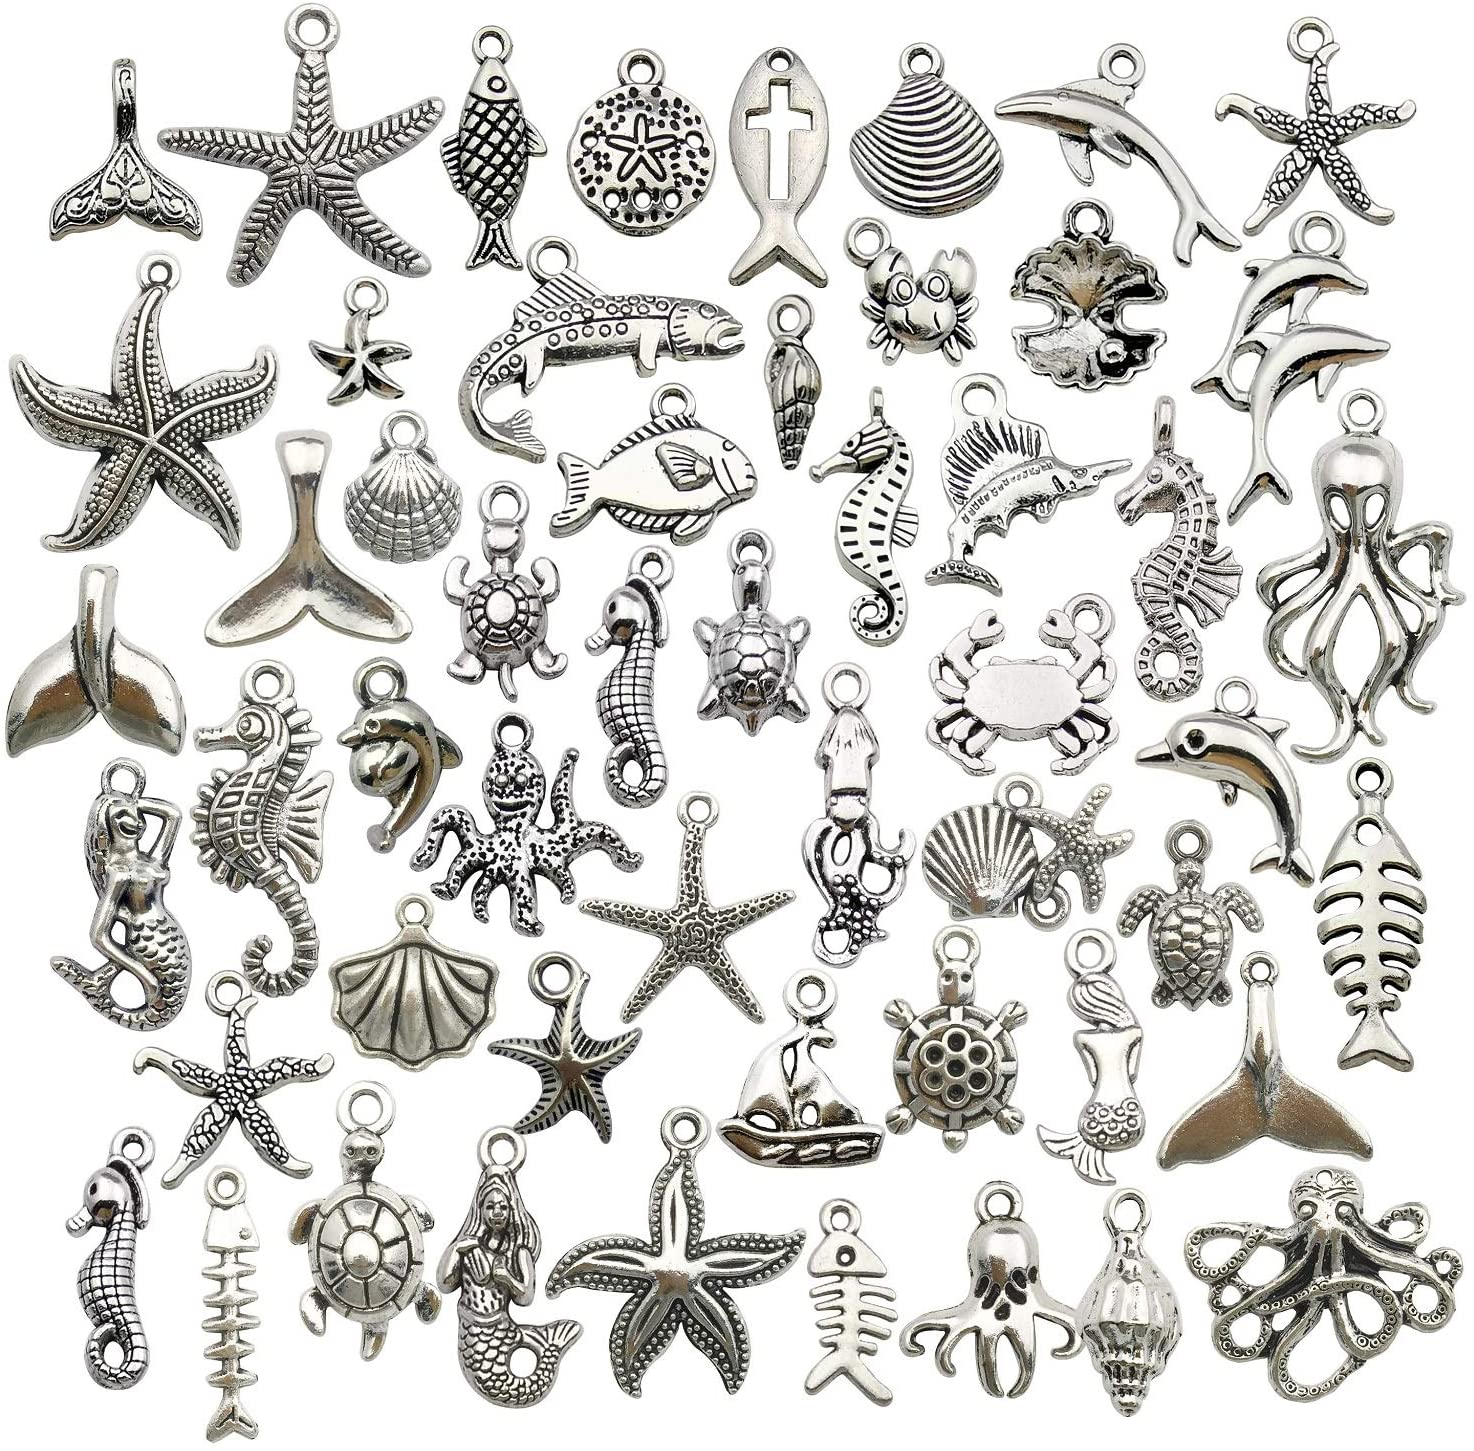 WOCRAFT 120g(100pcs) Antique Silver Sea Animals Marine Life Charms Pendants for Crafting, Jewelry Findings Making Accessory for DIY Necklace Bracelet (M292)